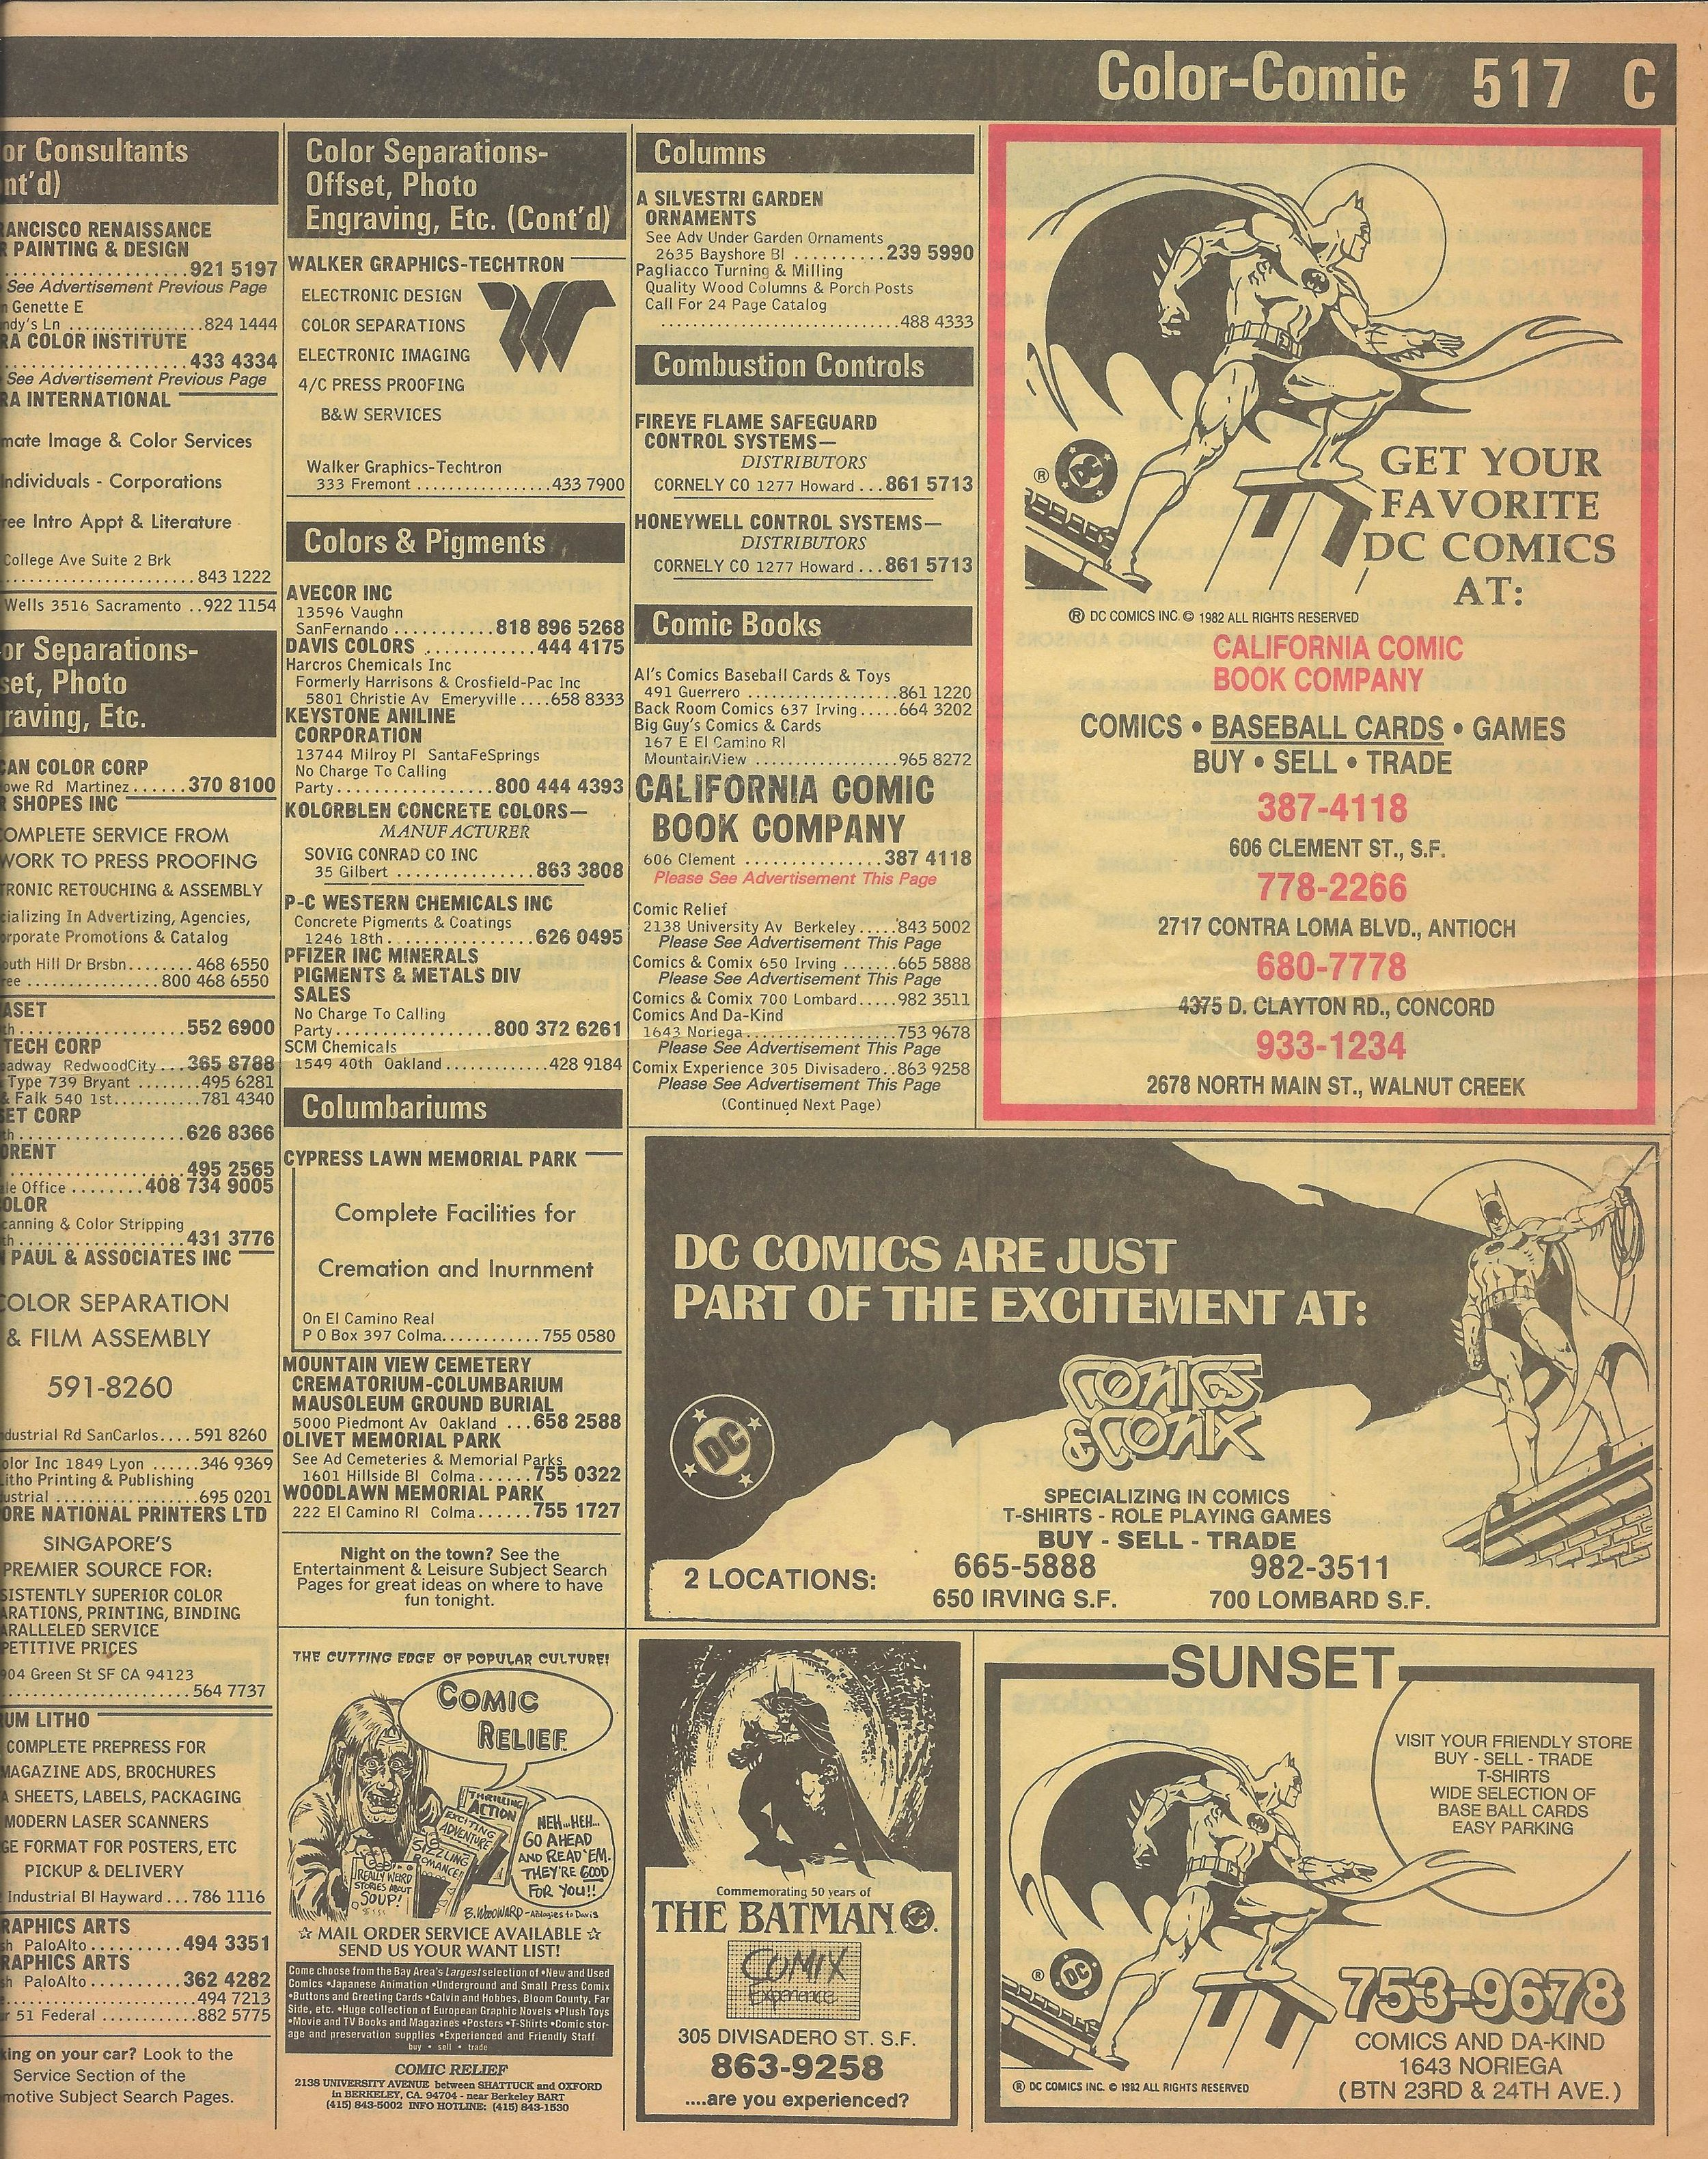 Yellow Pages 1989 1.jpg